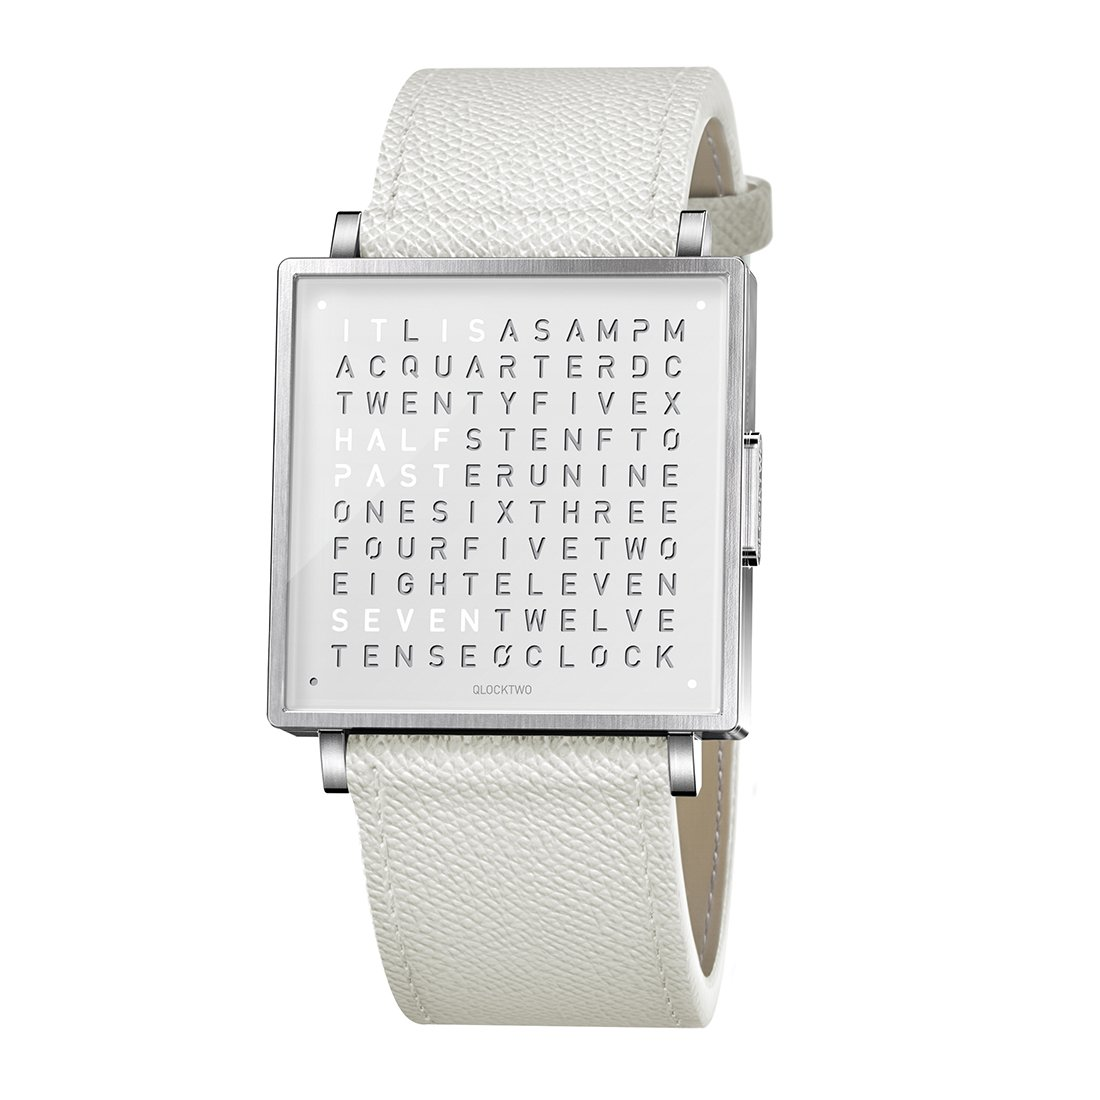 Biegert & Funk Qlocktwo Watch Pure White